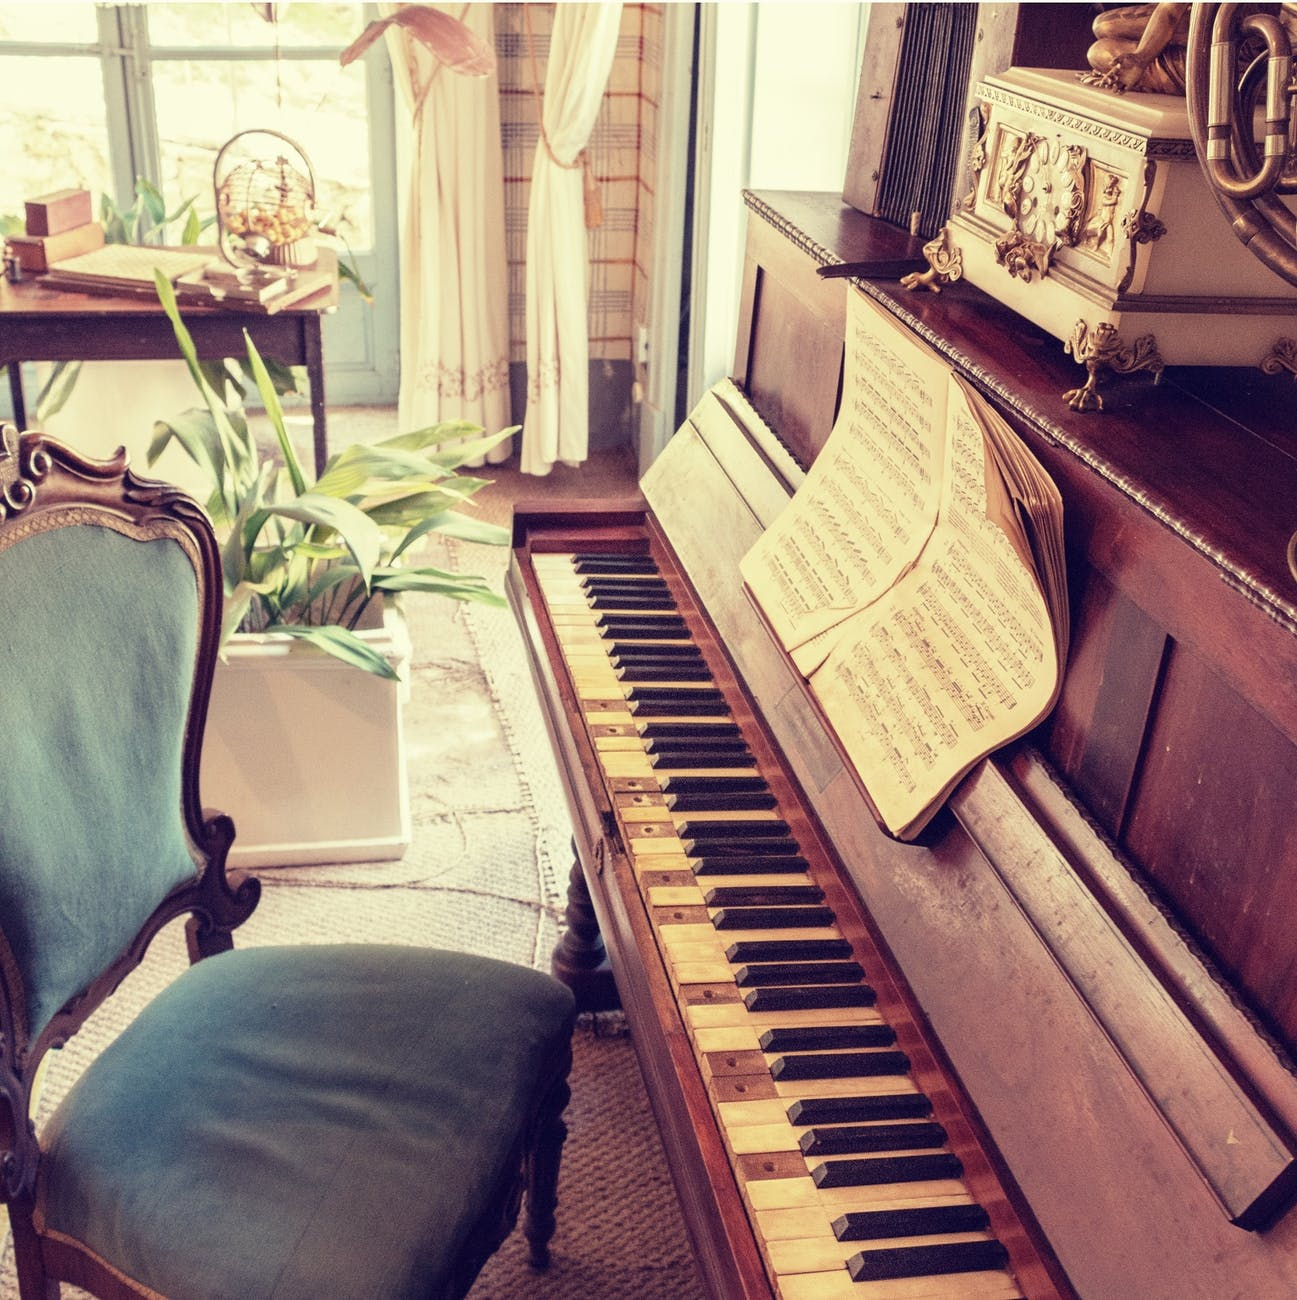 chair music musical instrument piano